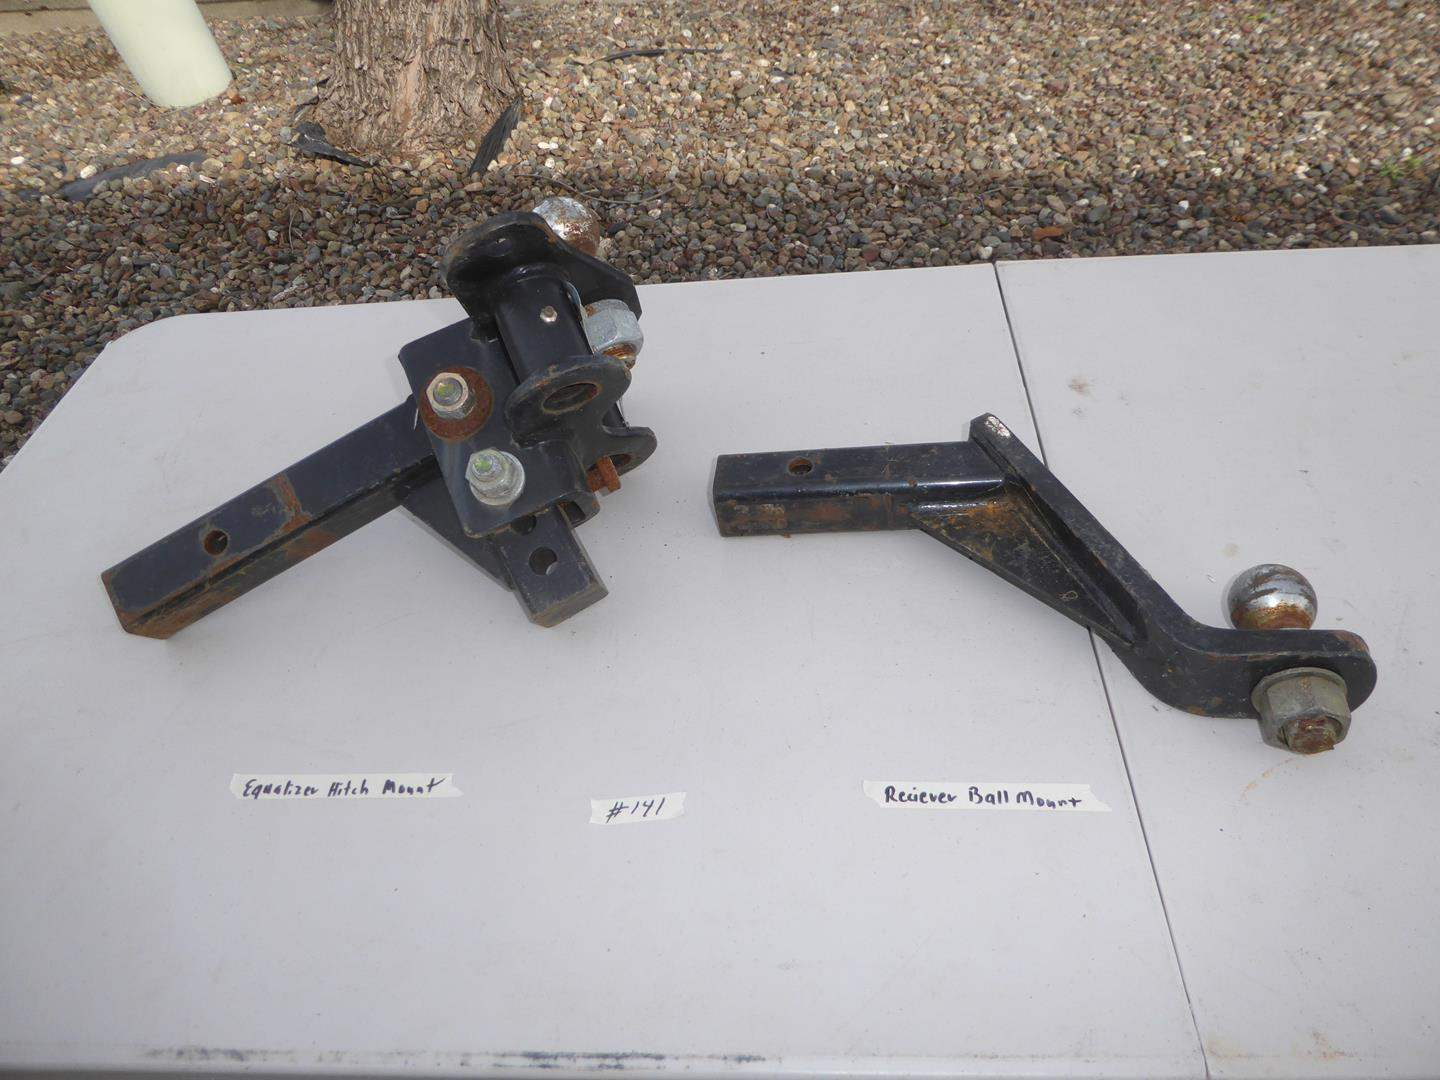 Lot # 141 - Equalizer Hitch Mount & Receiver Ball Mount (main image)